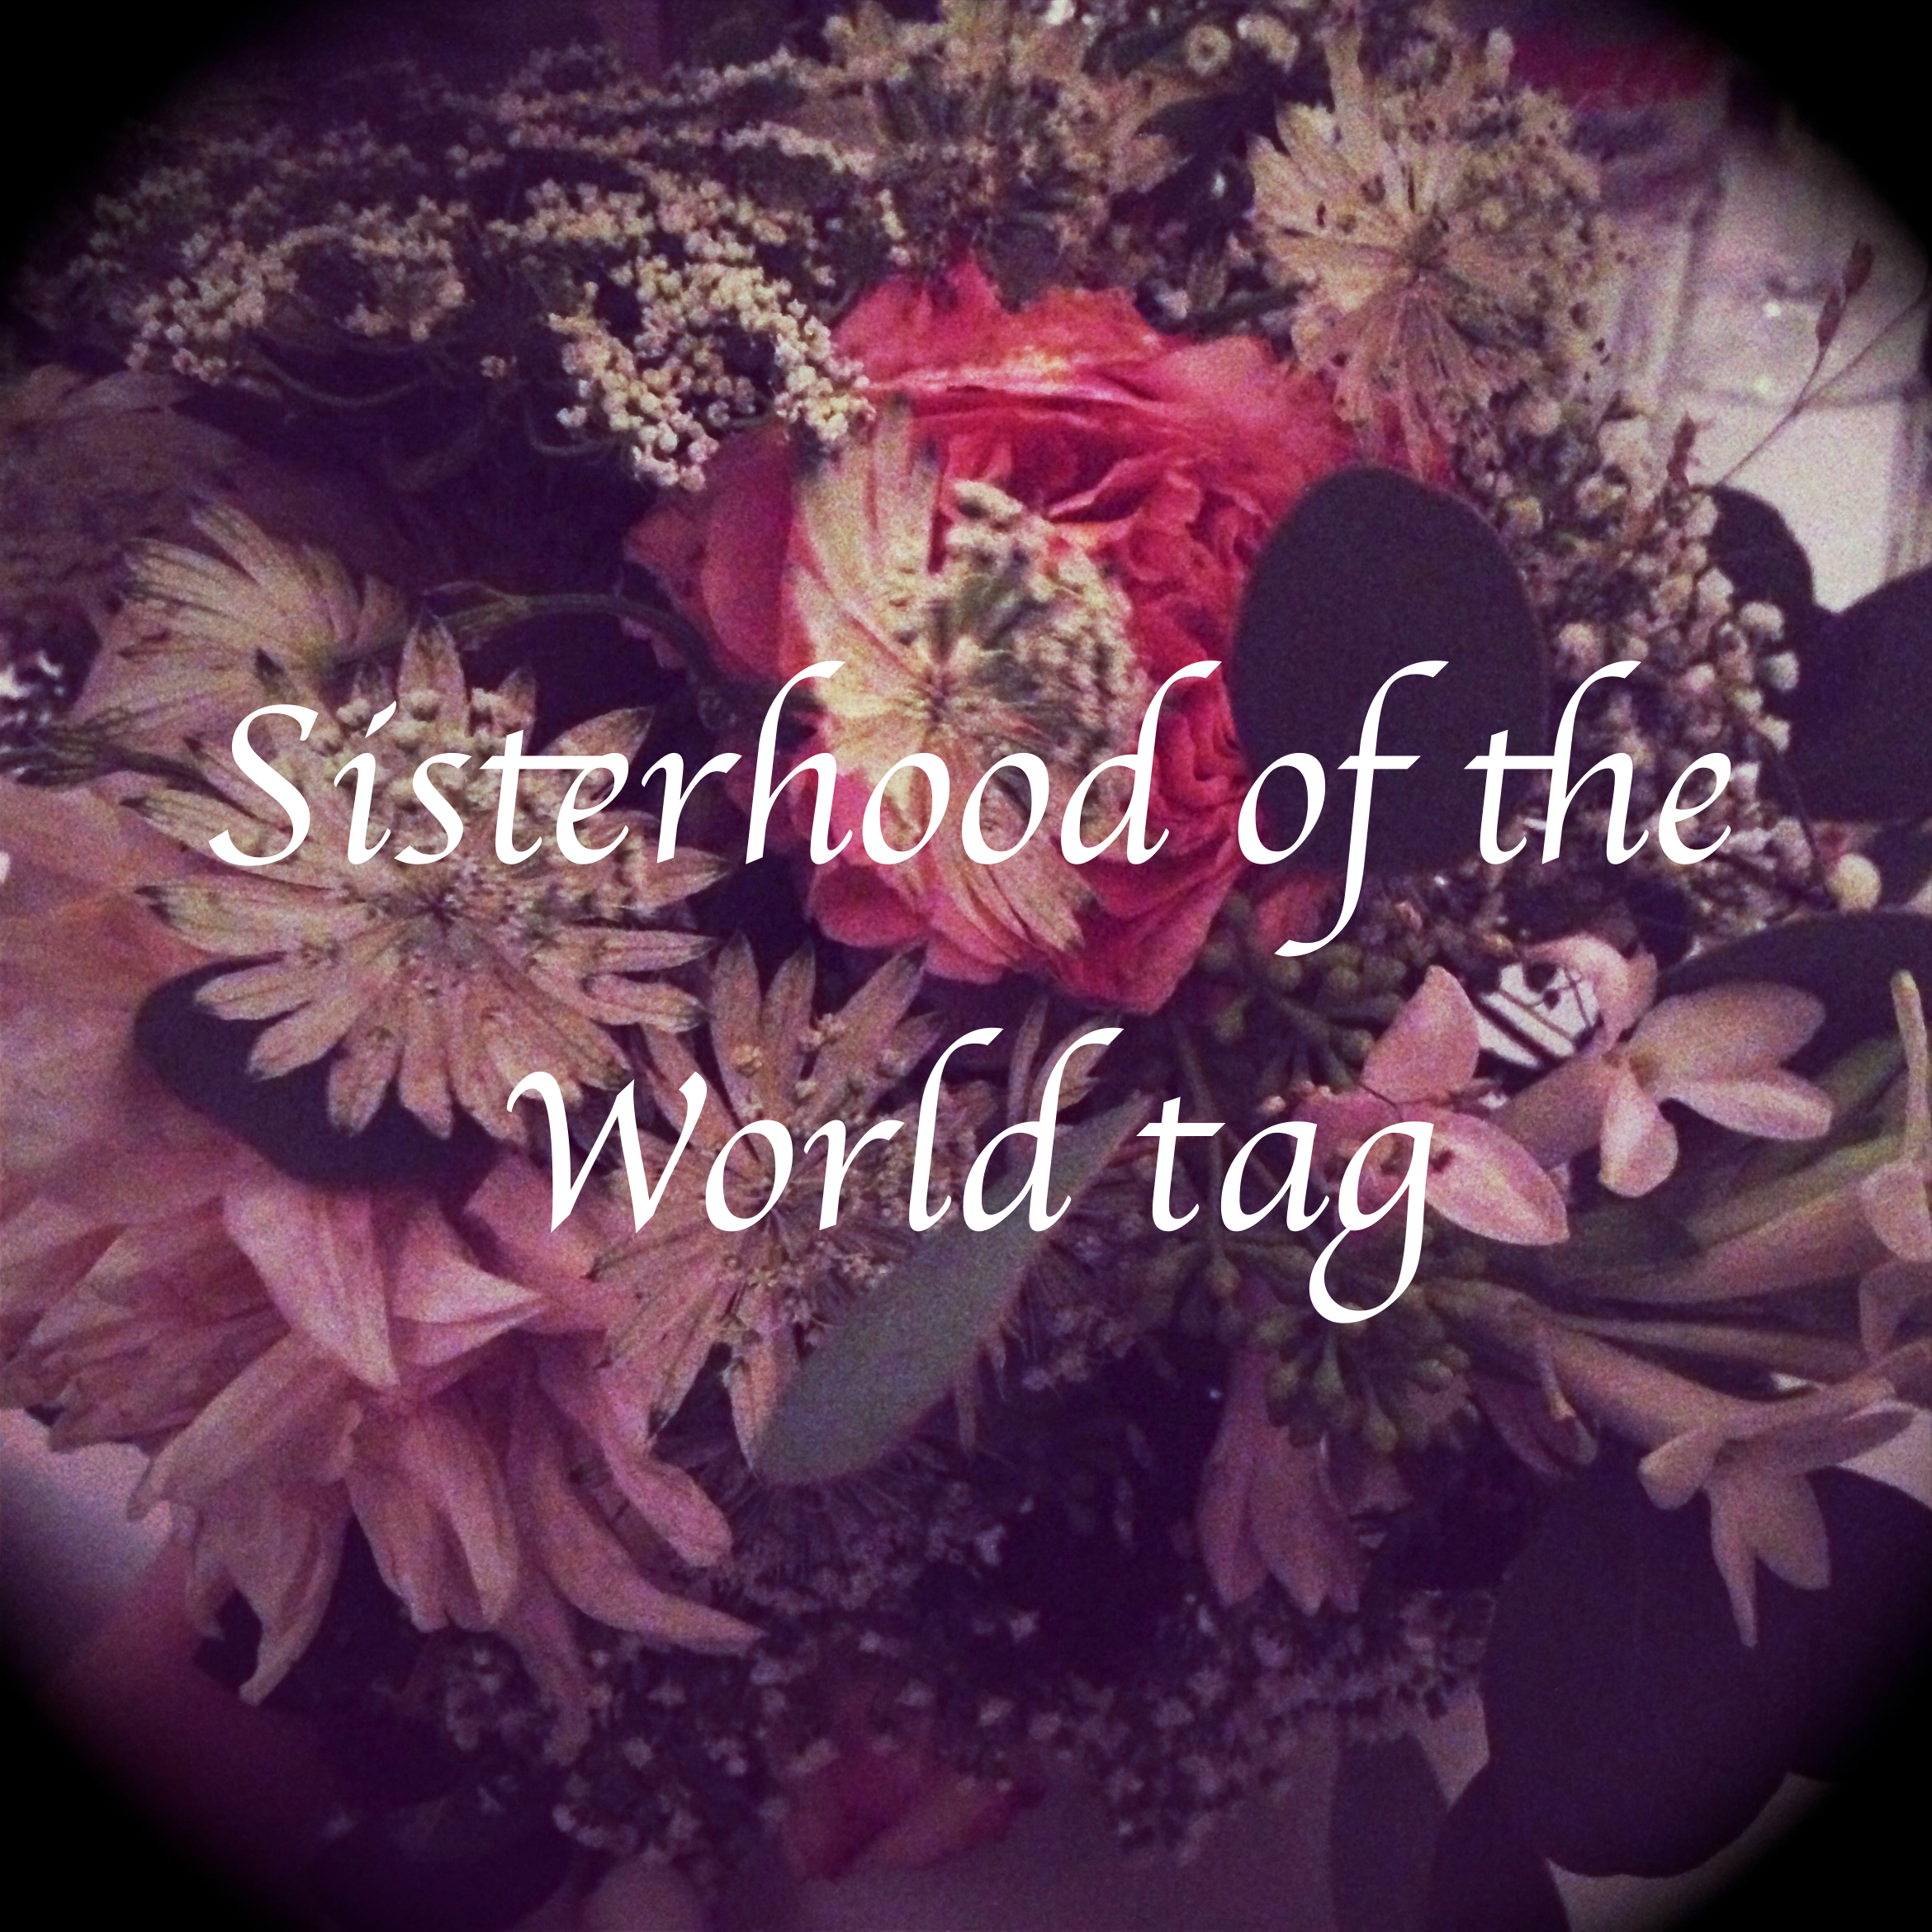 Sisterhood of the World tag!